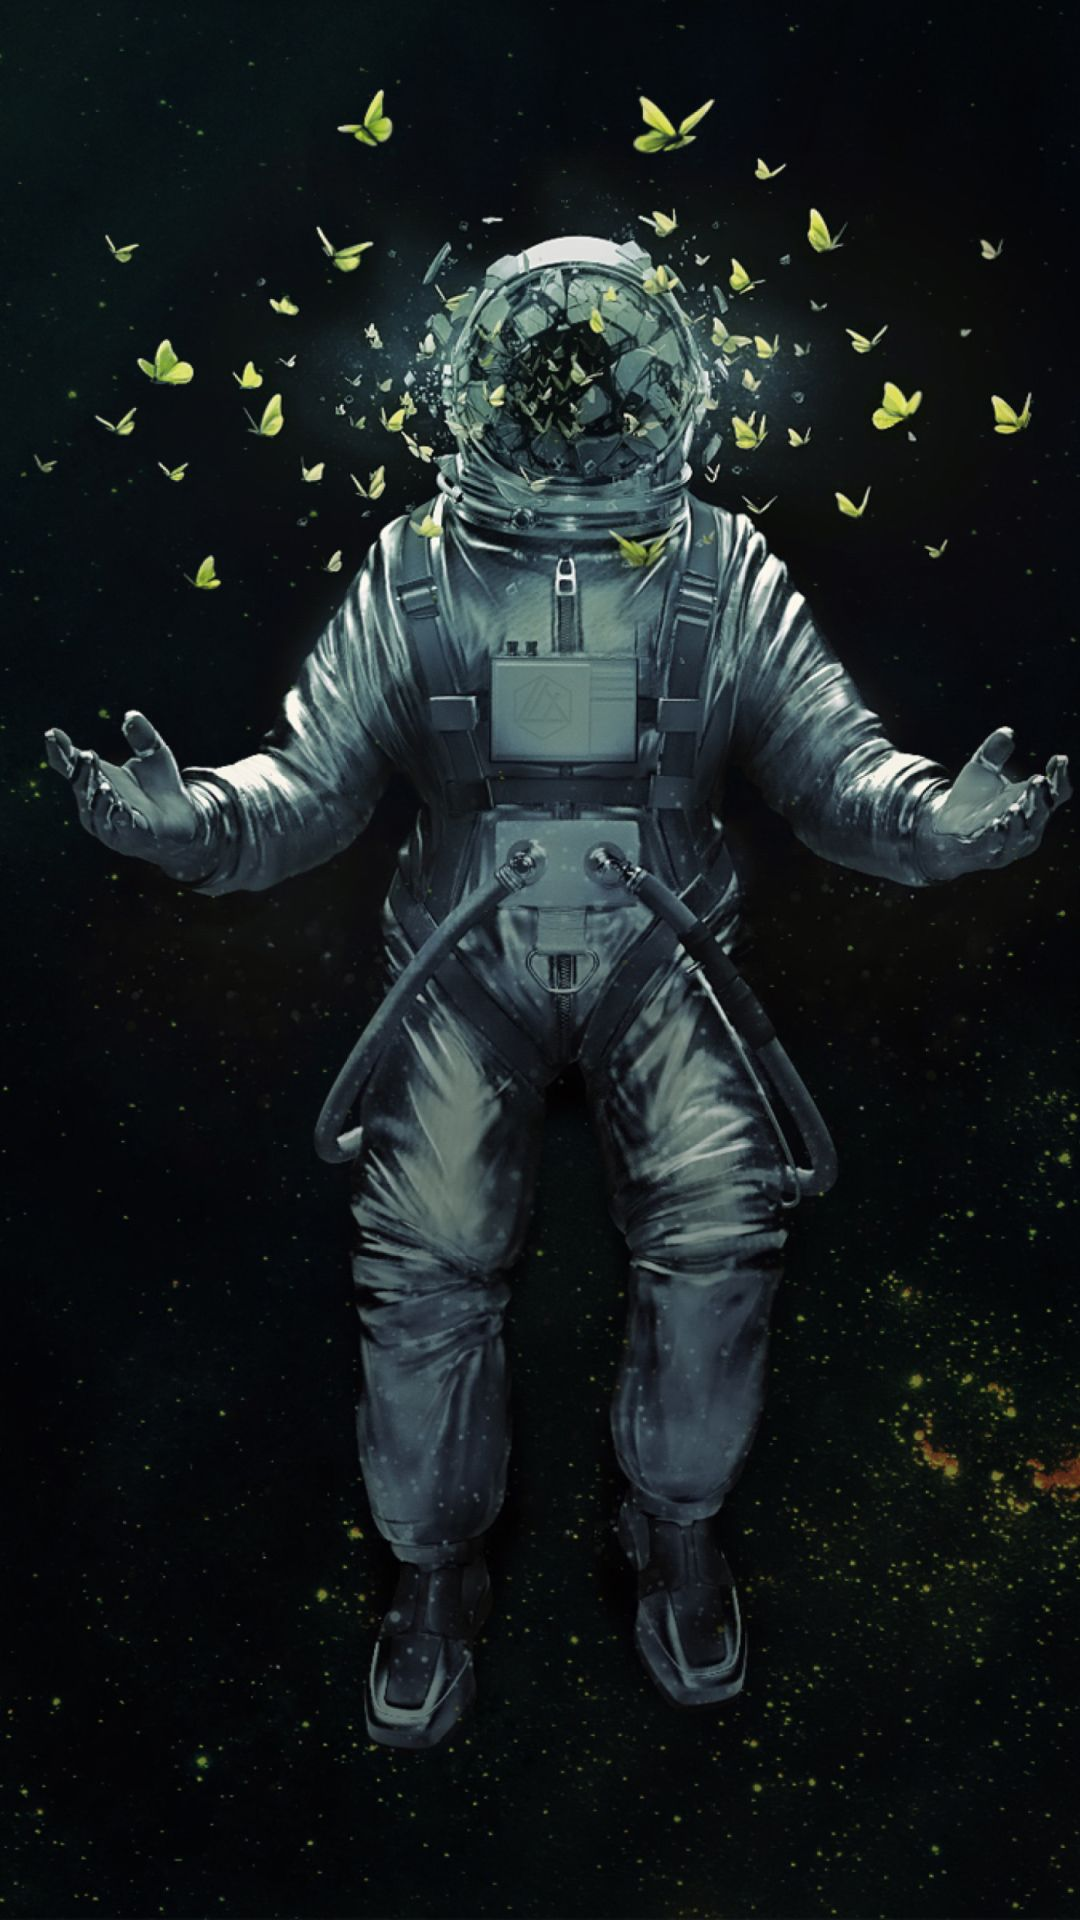 Http Wallpaperformobile Org 17004 Astronaut Iphone Wallpaper